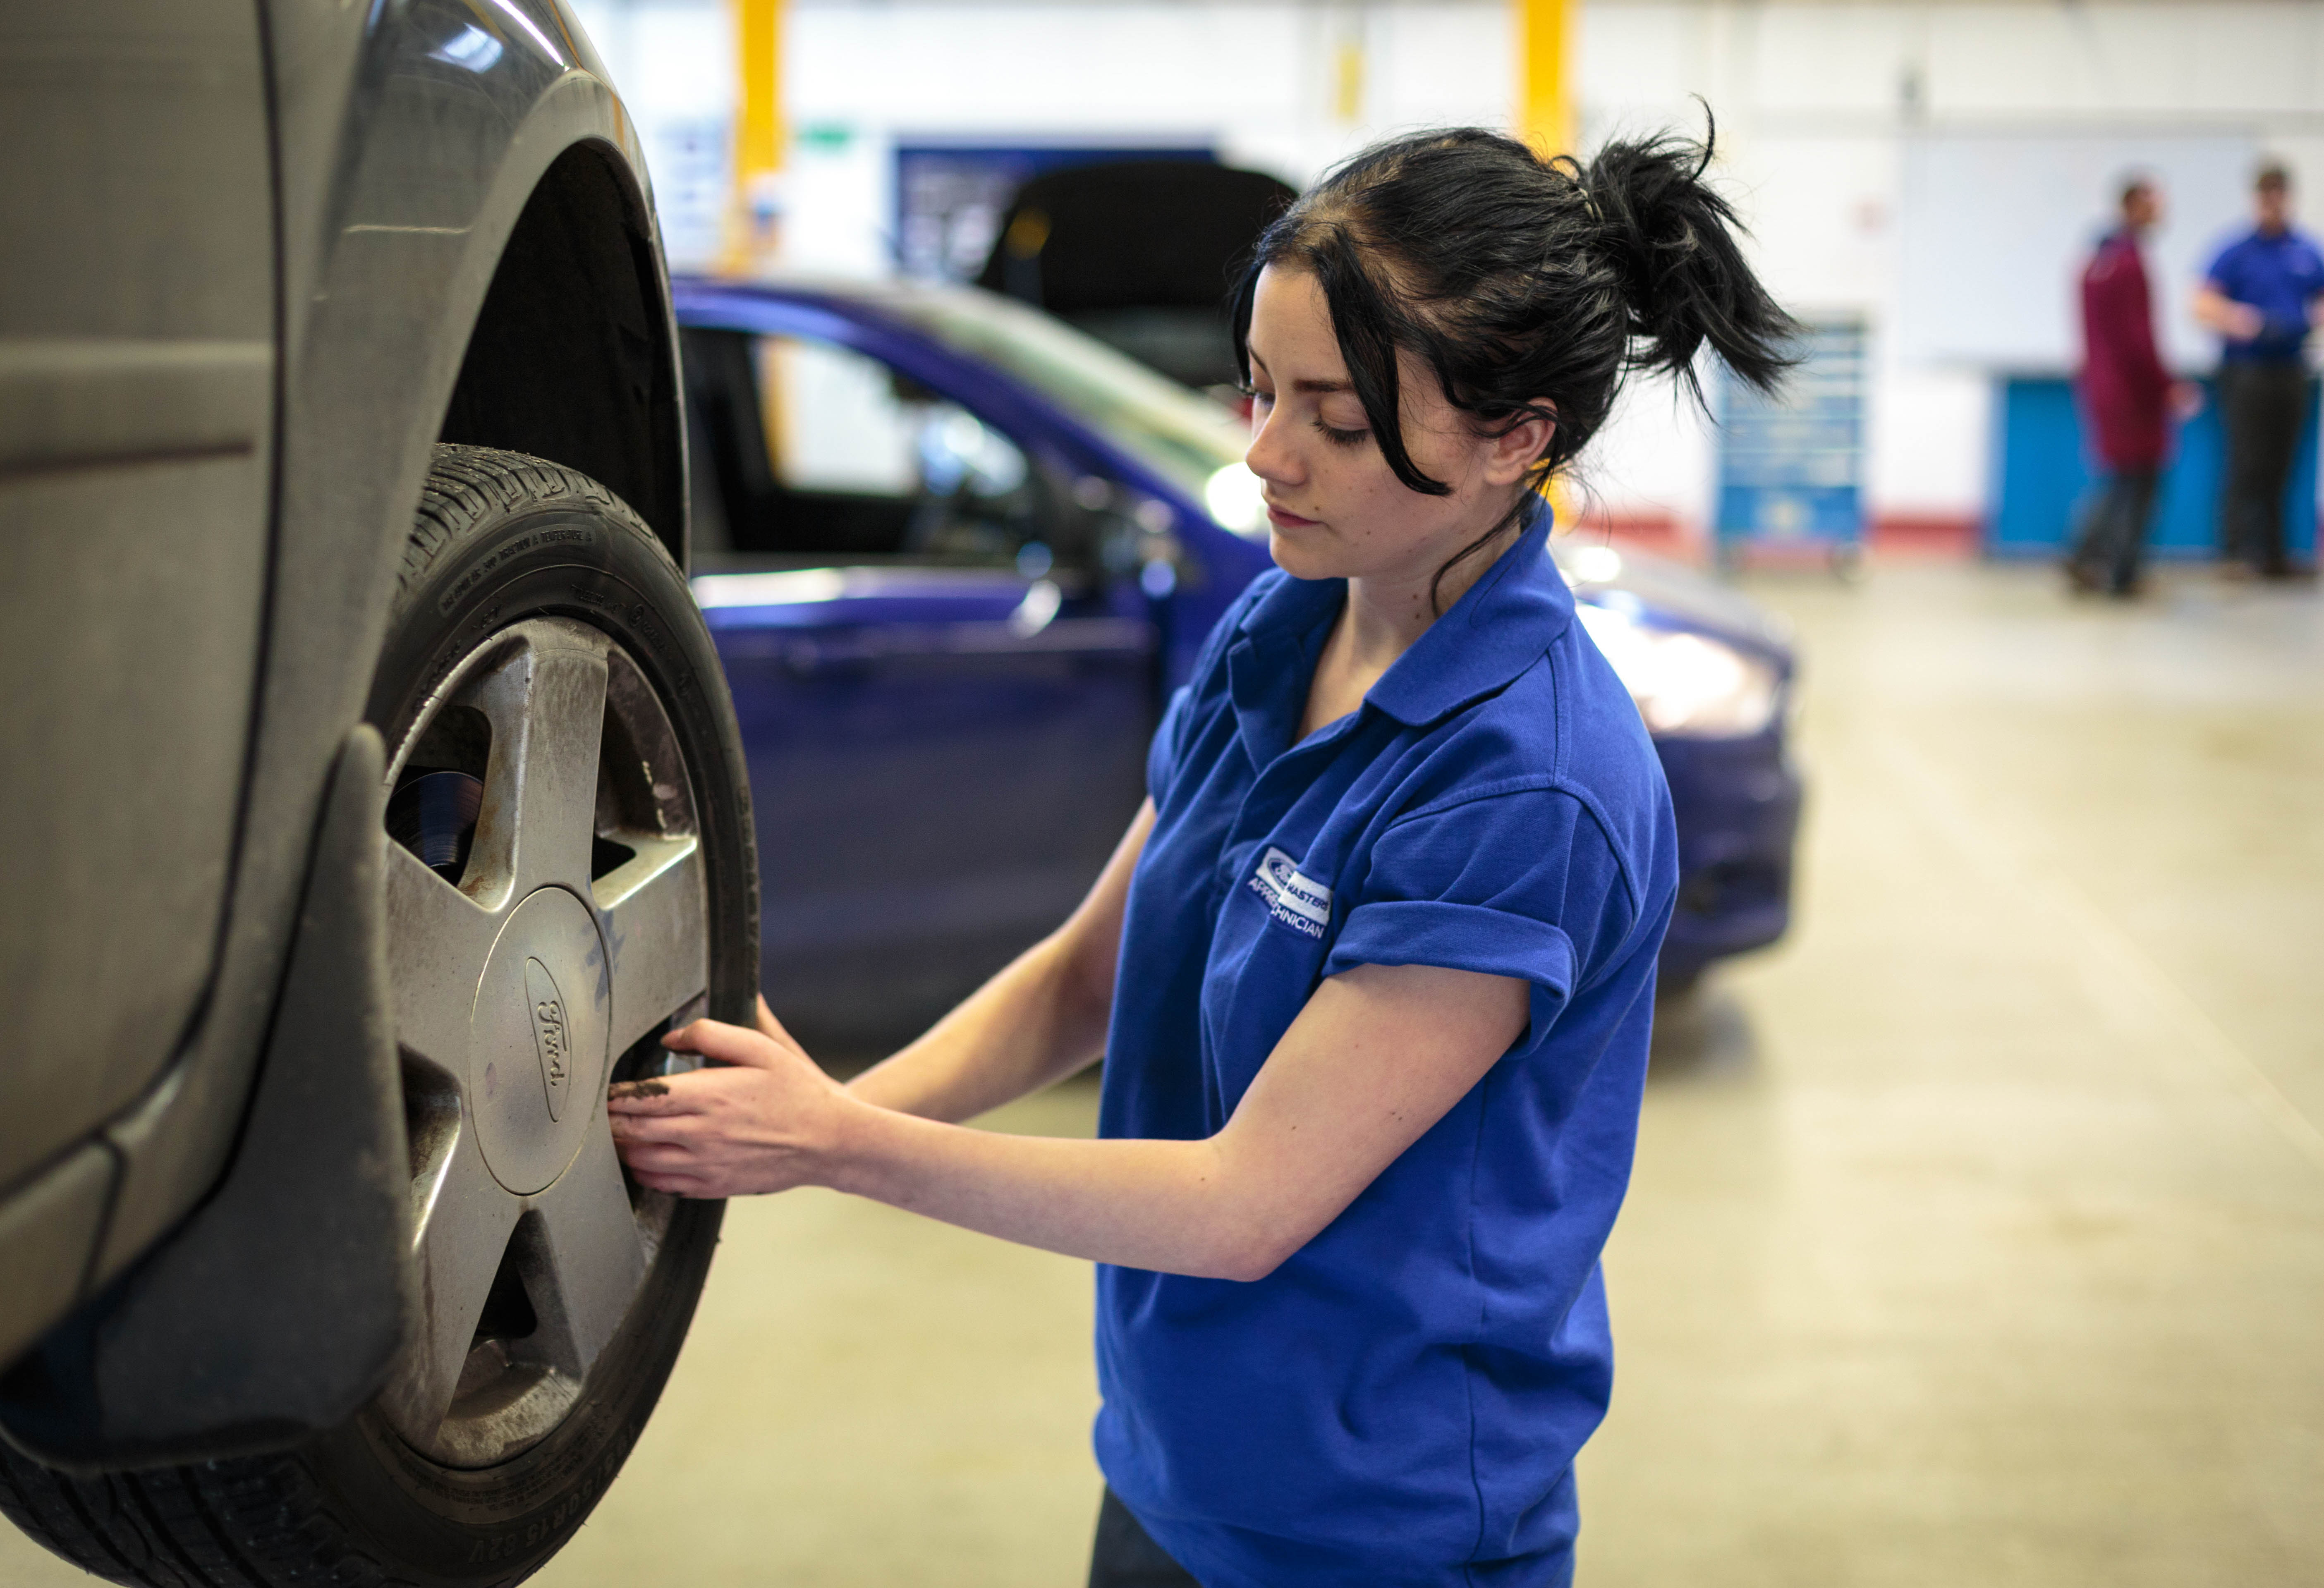 Student checking car tyre